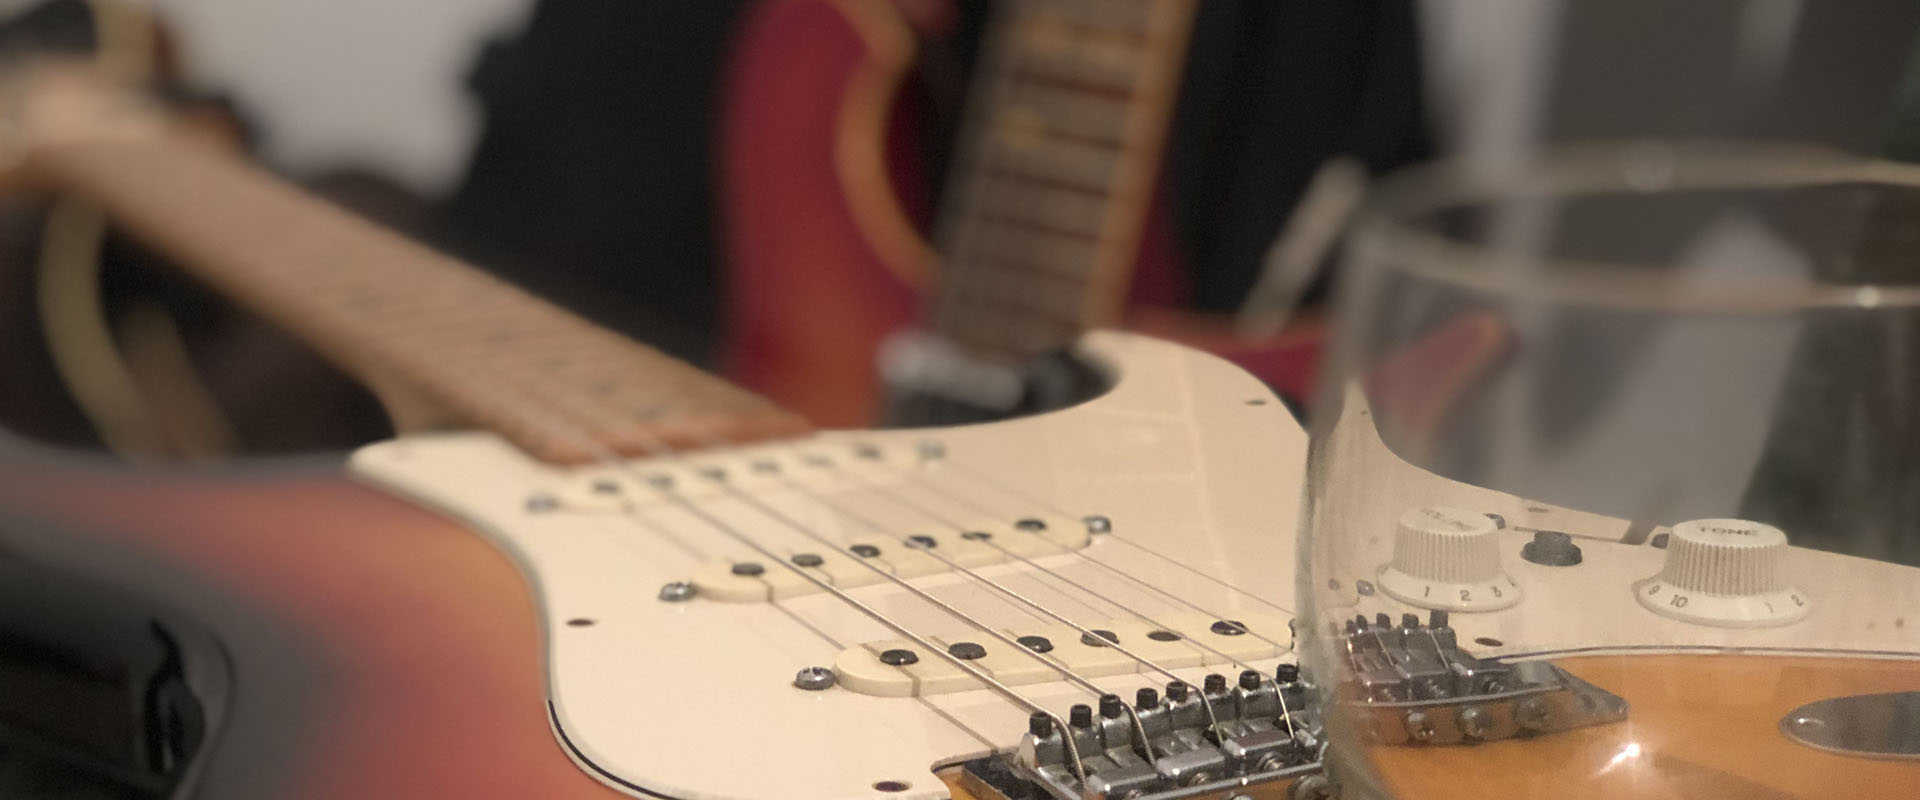 Picture shows a whiskey glass on a electric guitar's body. You can spot fender stratocaster and rickenbacker 620